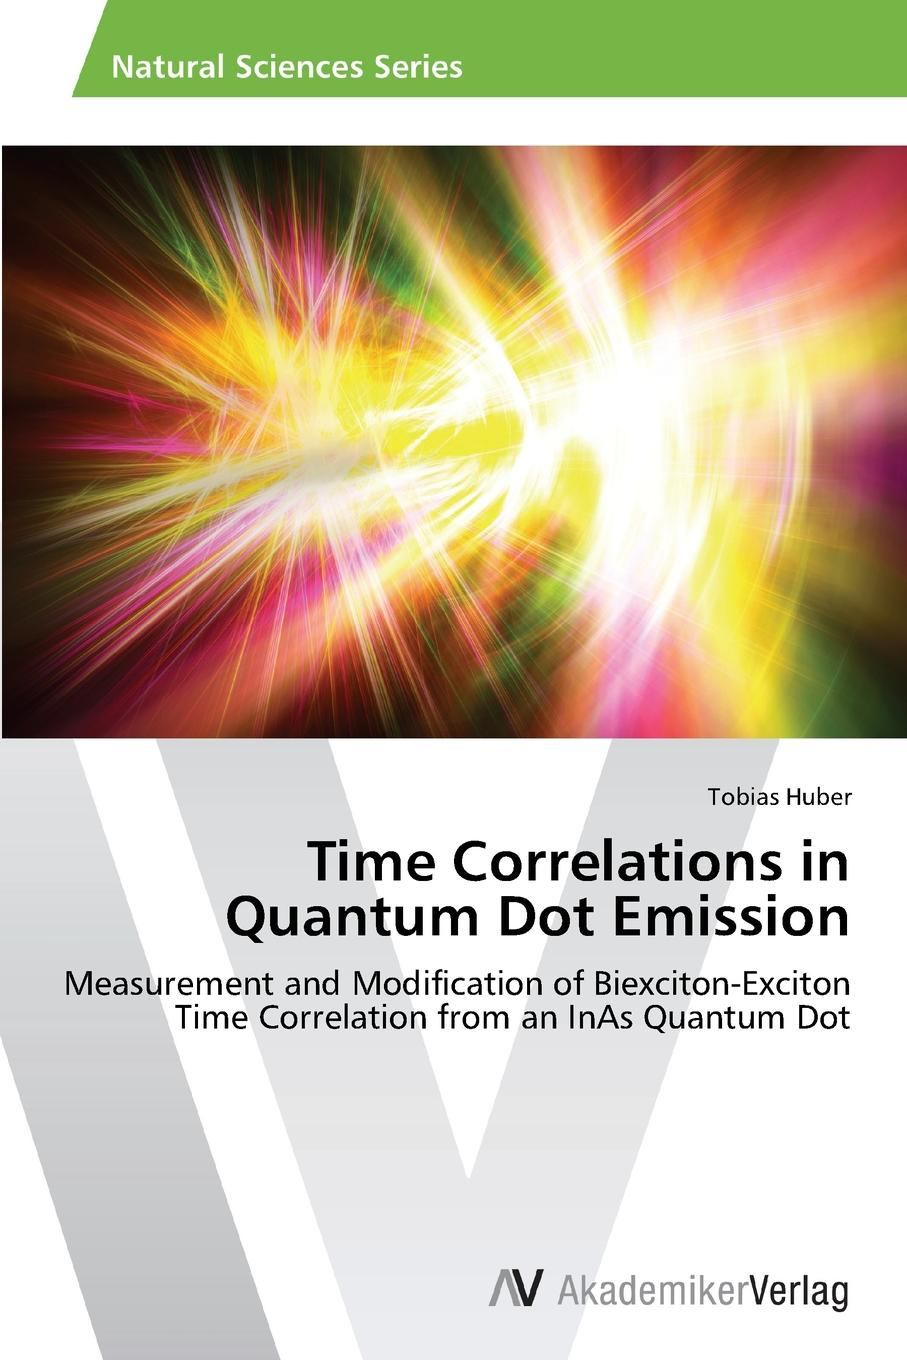 Huber Tobias Time Correlations in Quantum Dot Emission biplab ghosh quantum entanglement and its characteristics in cavity qed